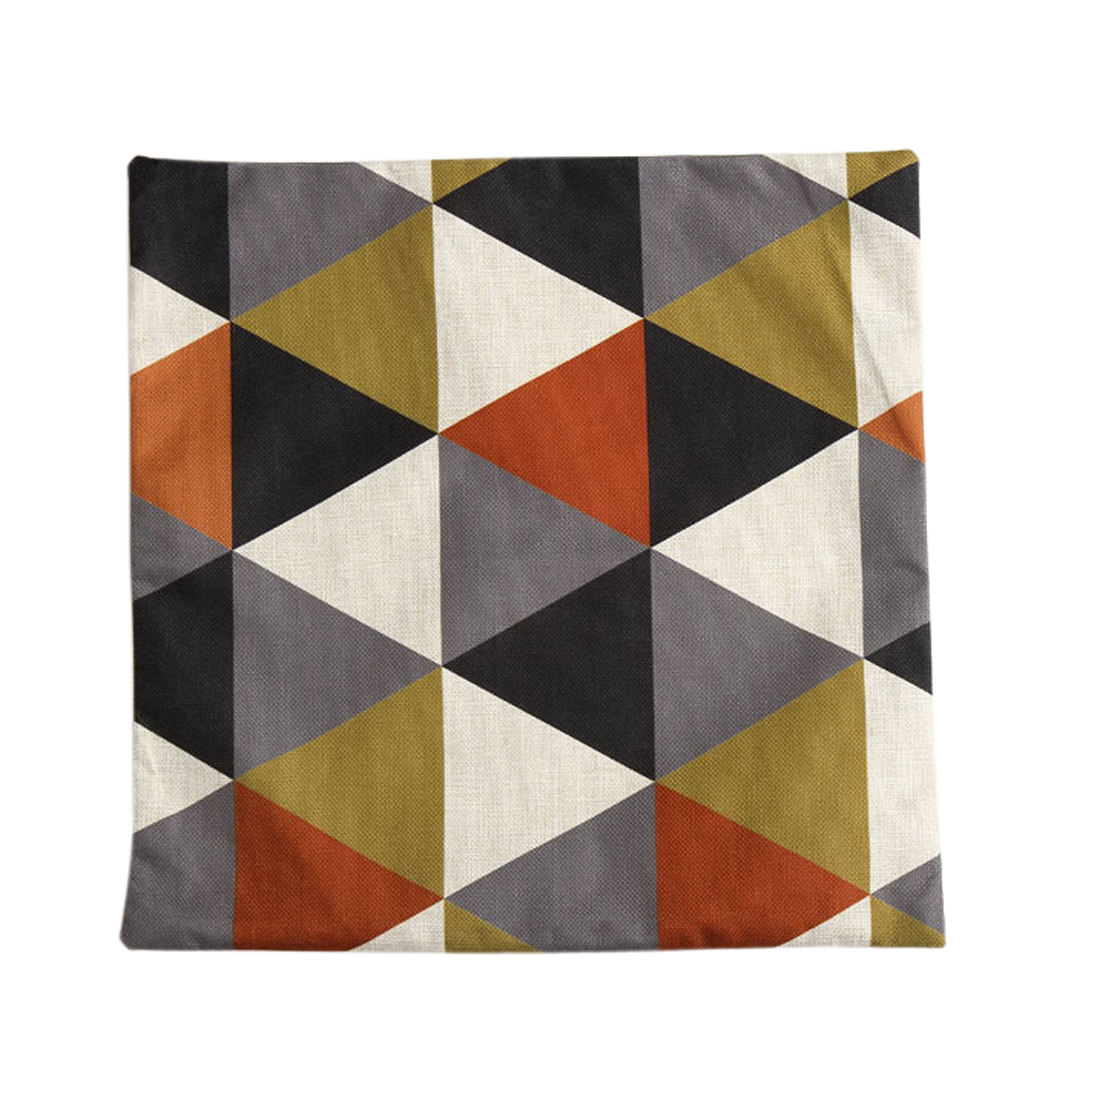 Piccocasa Sofa Linen Orange Rhombus Pattern Cushion Cover Pillow Case 45 x 45cm